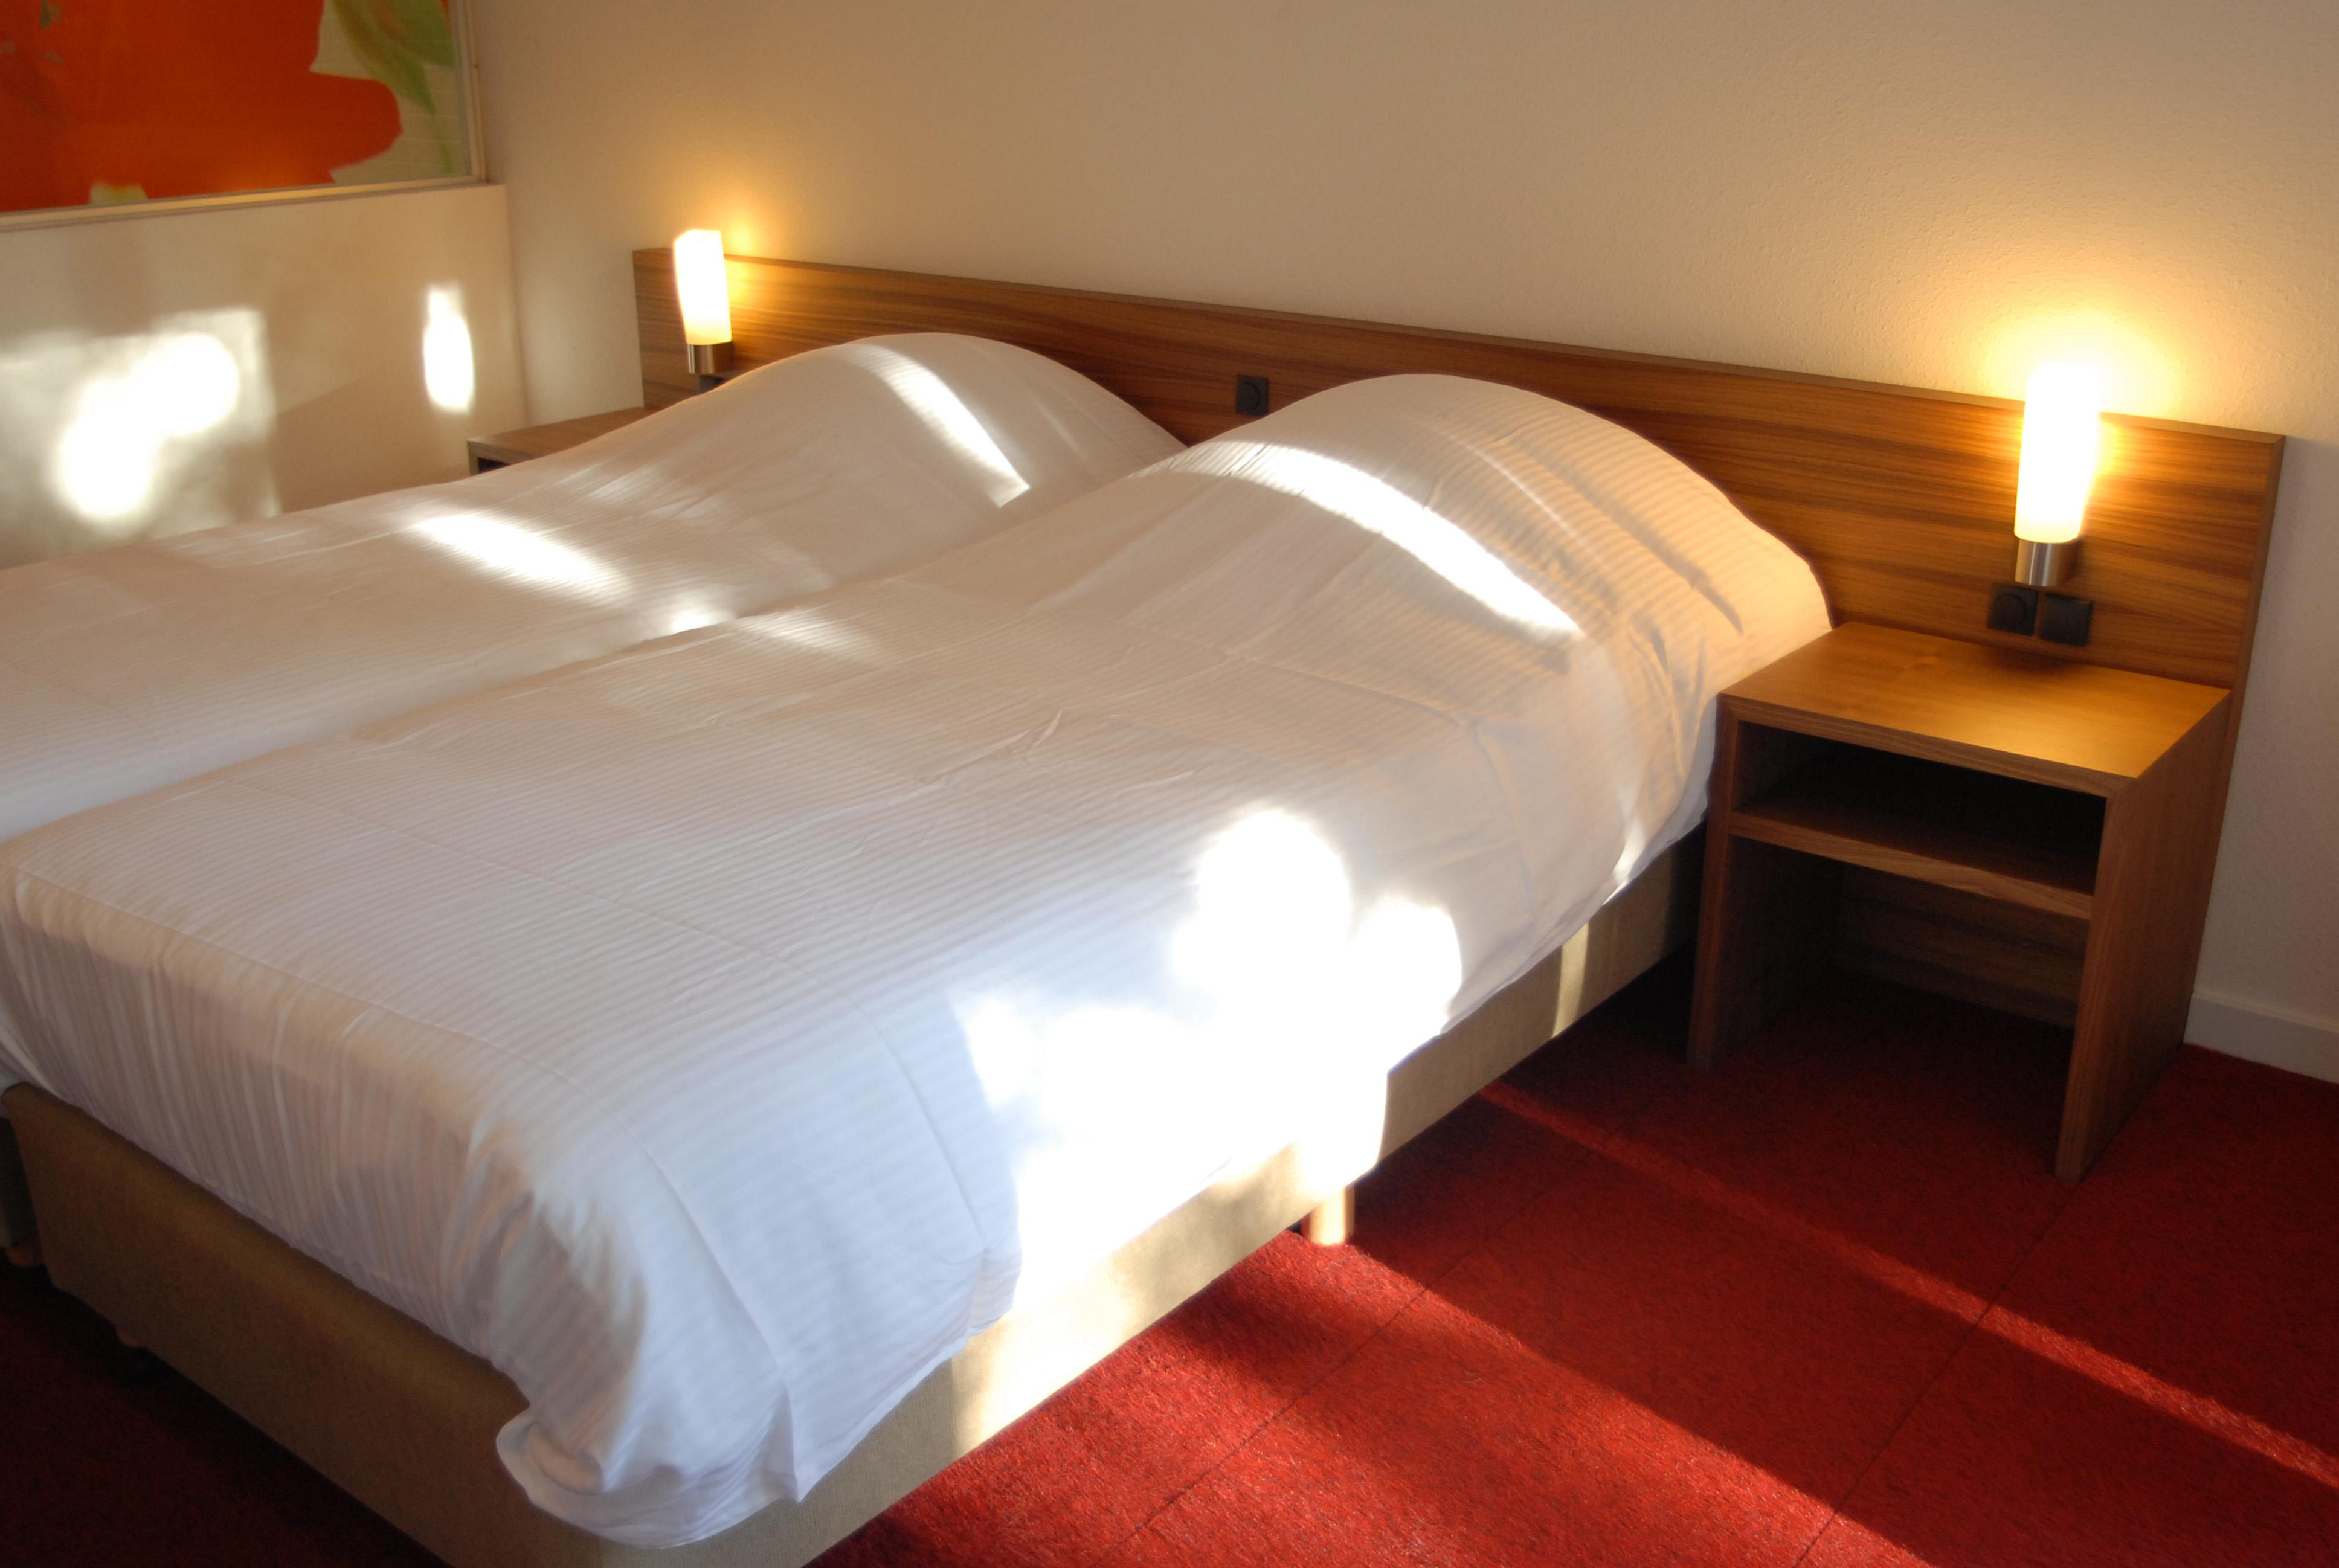 Appart hotel corbie visitflanders for Appart hotel 63